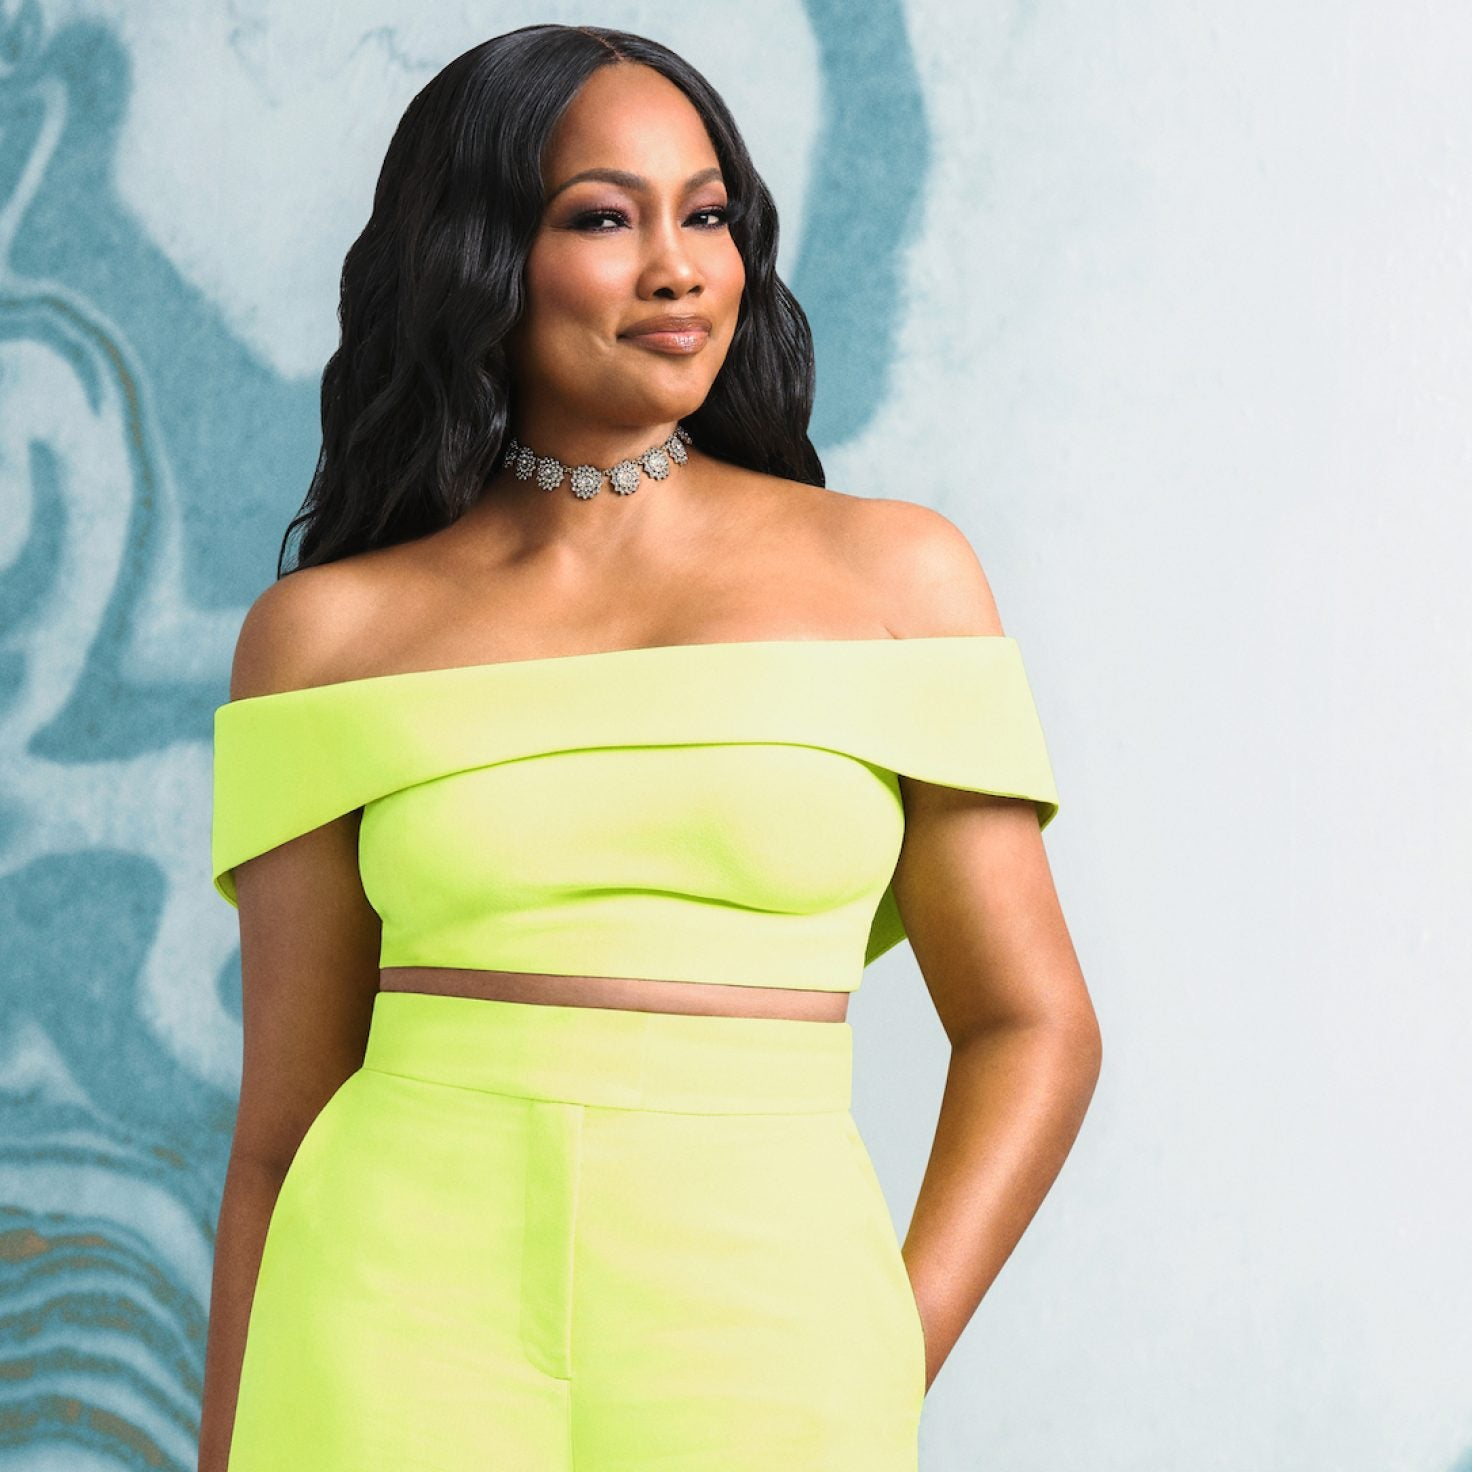 Every Photo Of Garcelle Beauvais (So Far!) From 'Real Housewives of Beverly Hills'